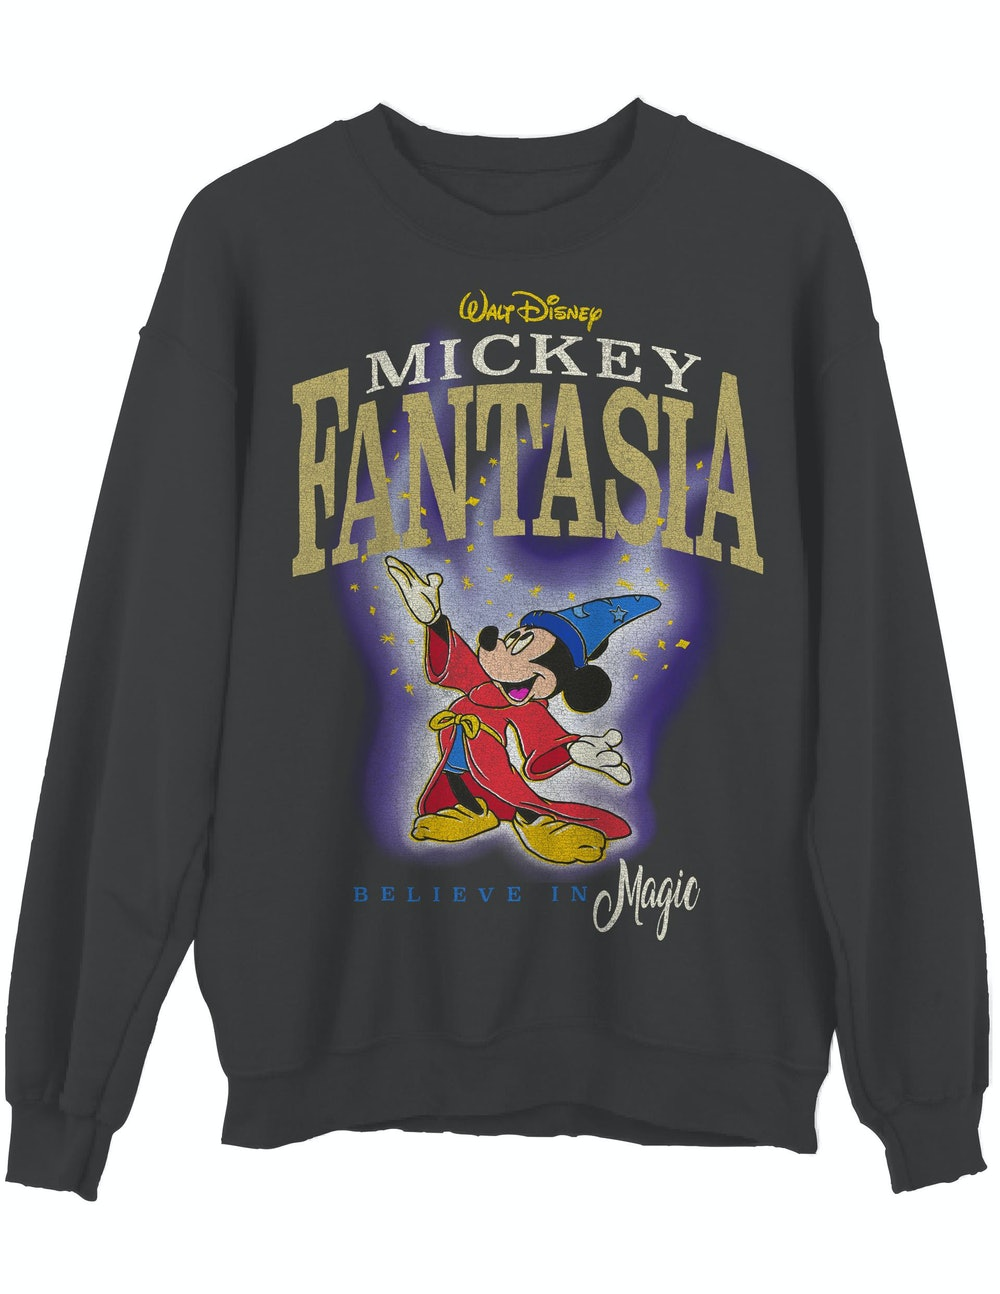 UO x Disney's 'Fantasia' 80th Anniversary Crewneck